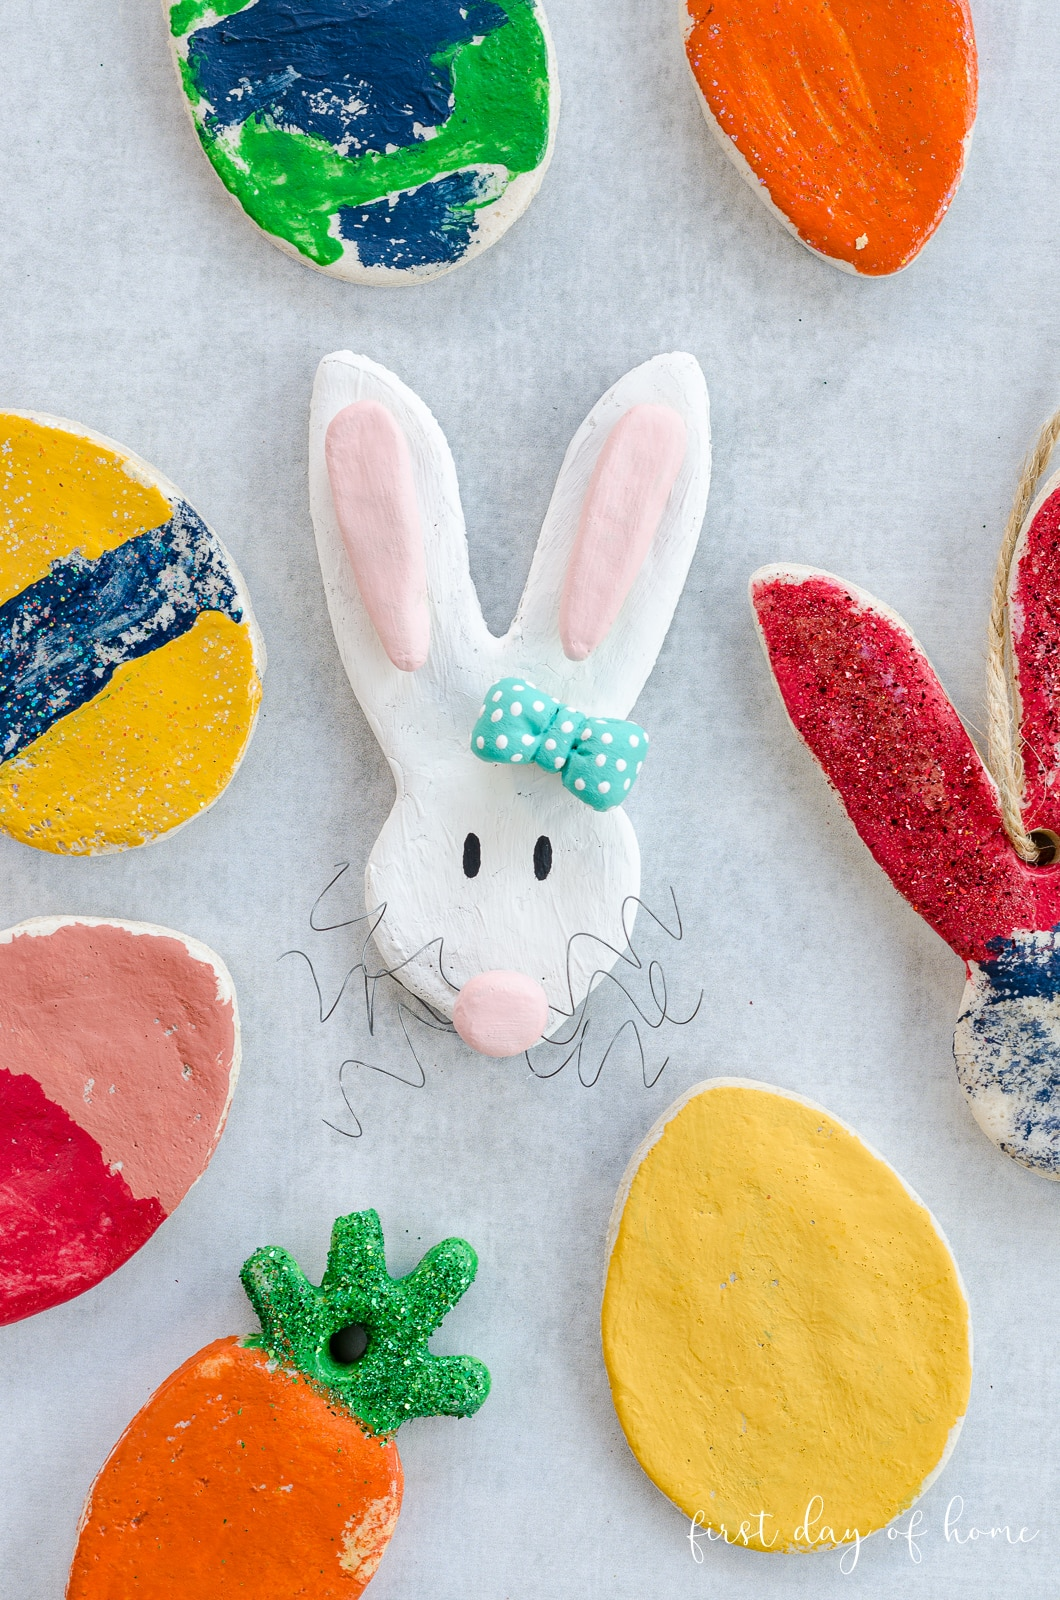 Salt dough ornaments in the shape of Easter eggs, bunnies and carrots